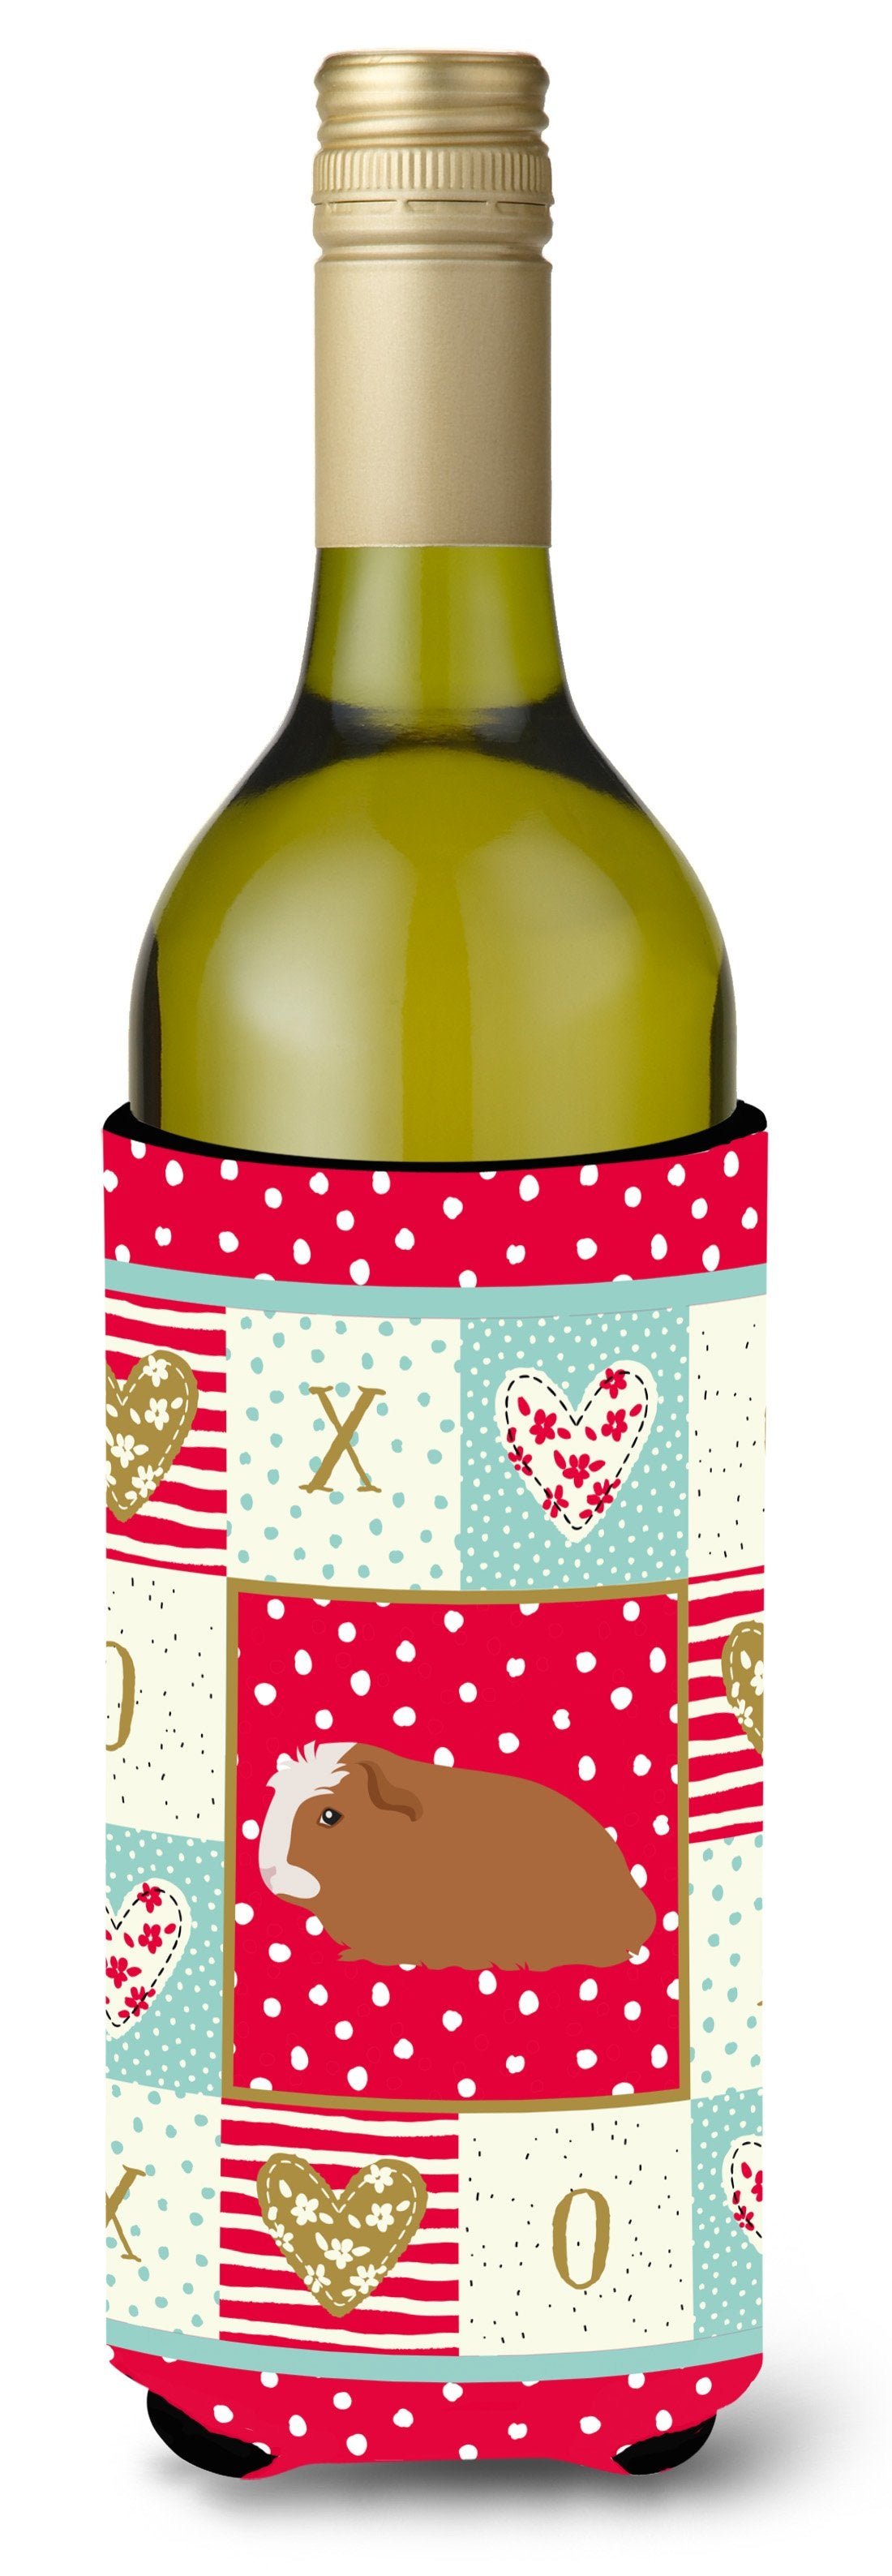 Crested Guinea Pig Love Wine Bottle Hugger CK5428LITERK by Caroline's Treasures